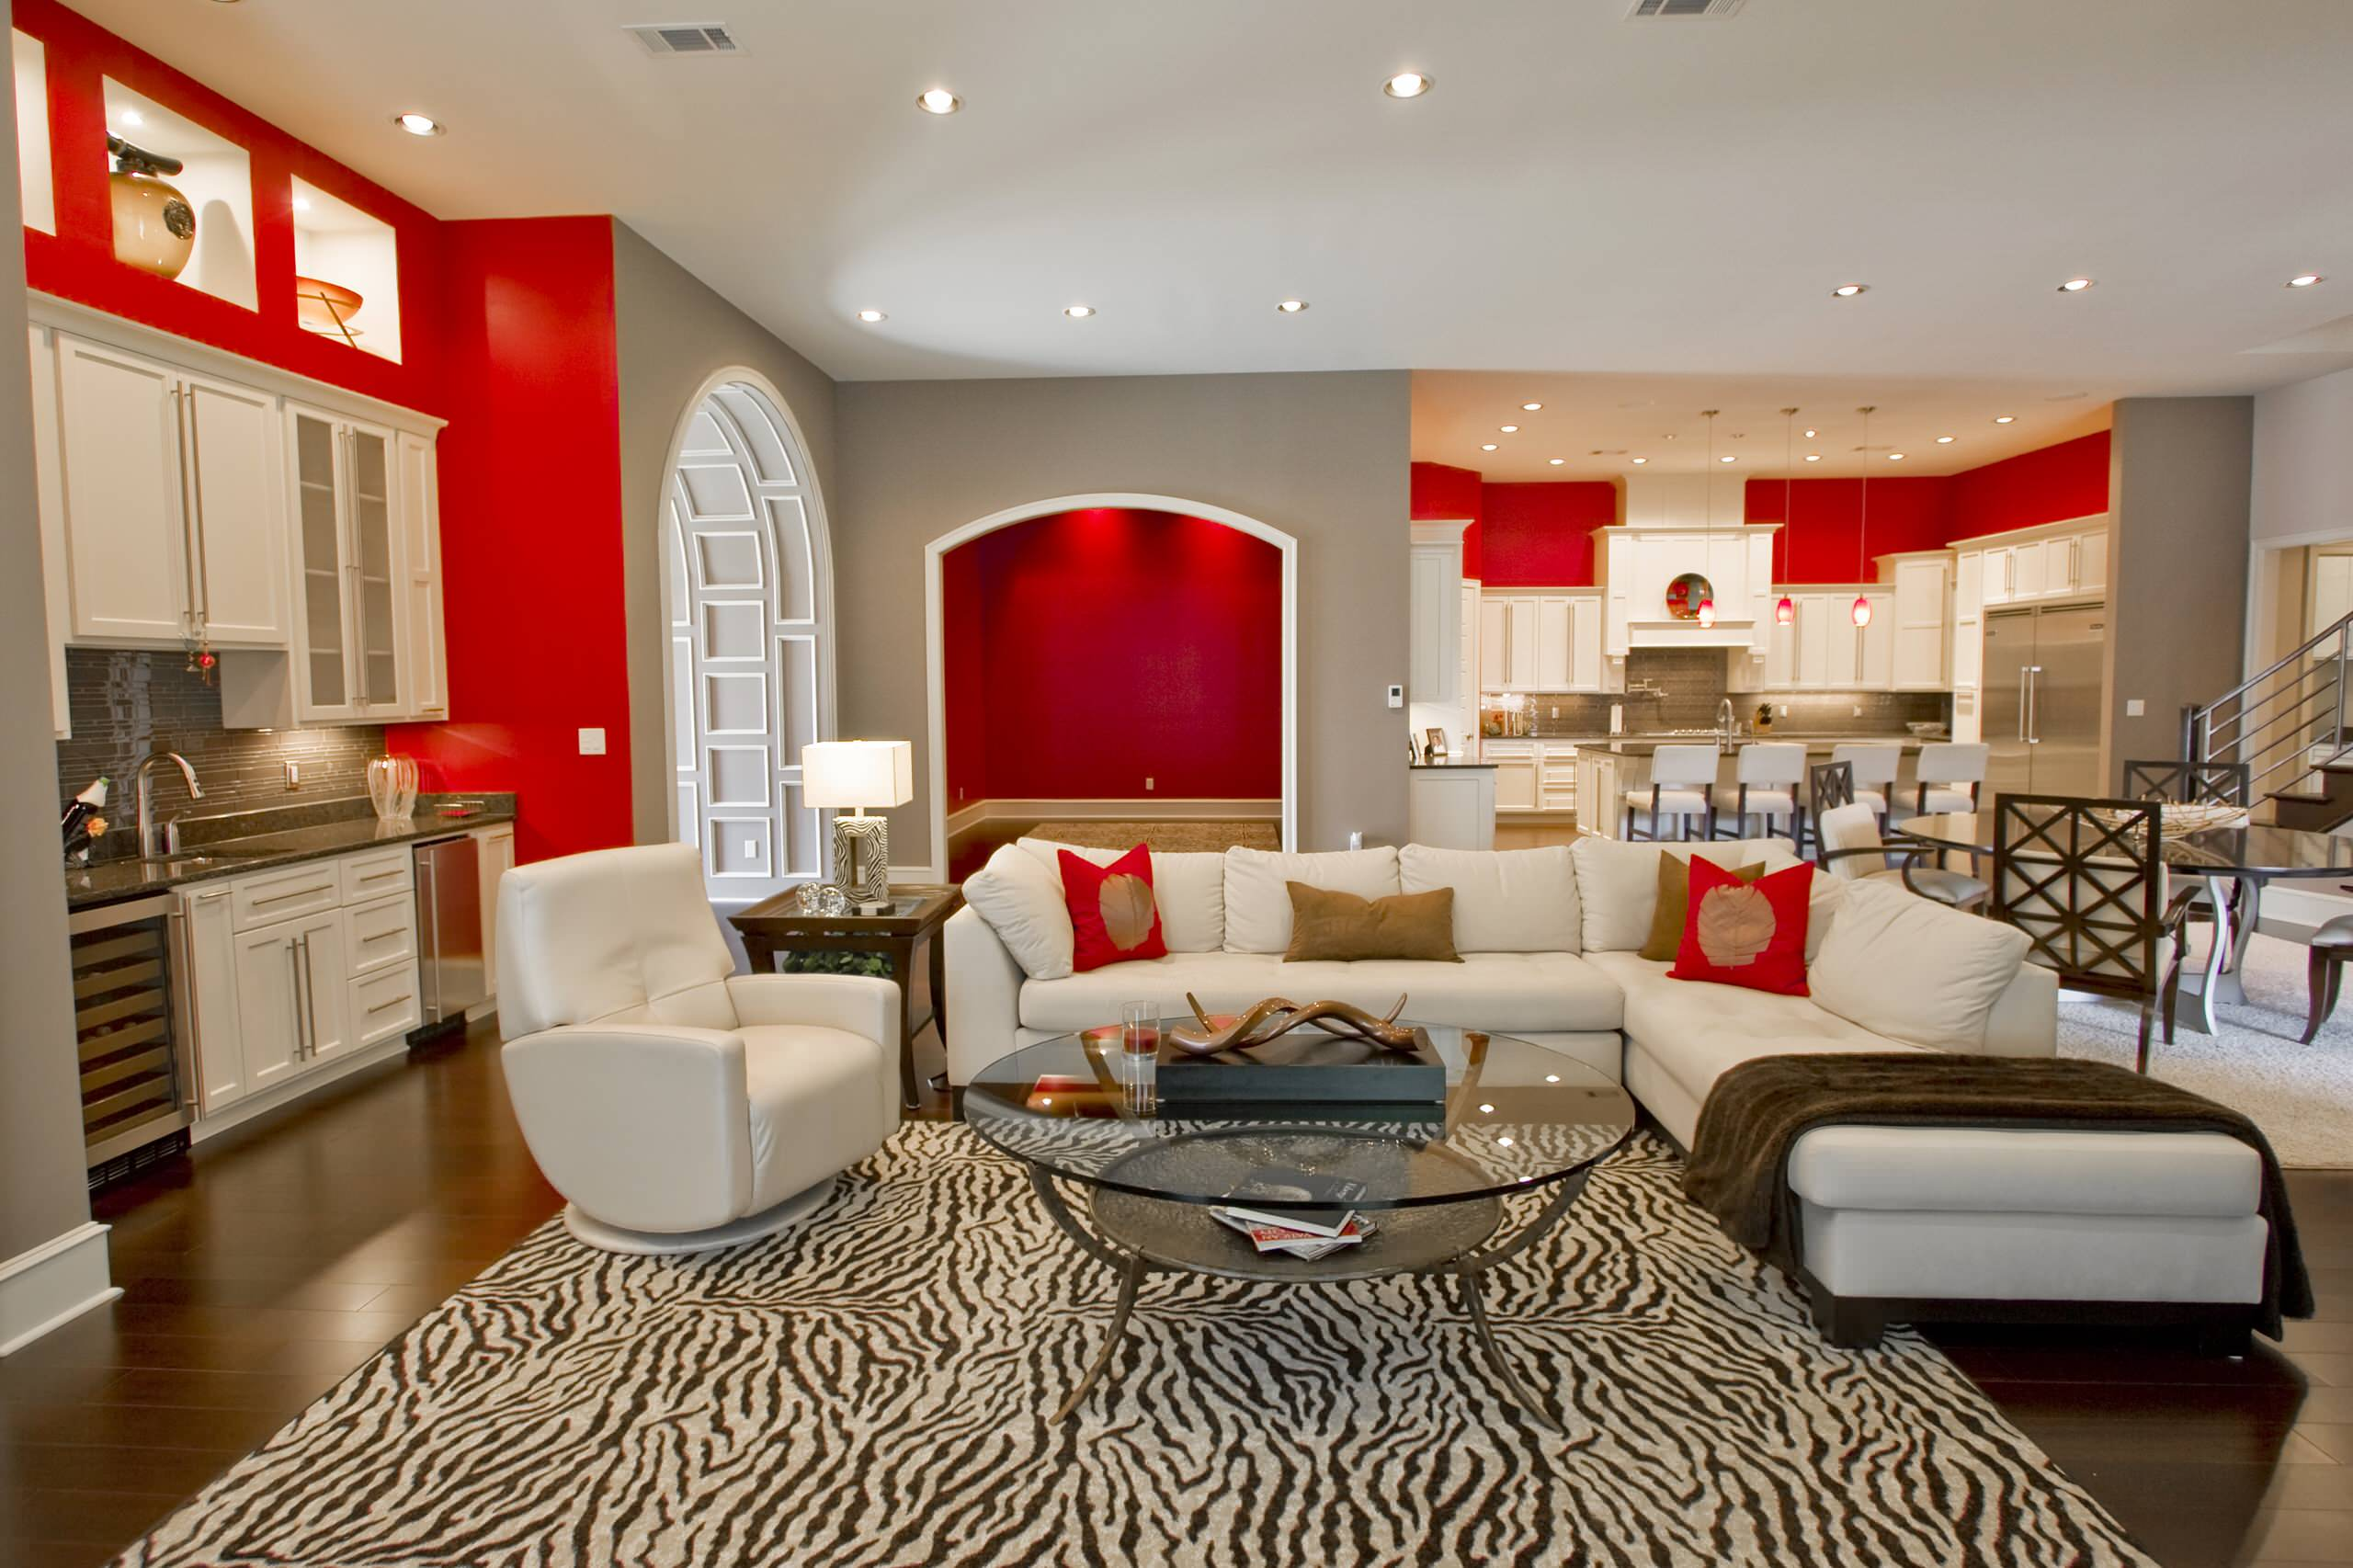 Home Interior Decor with Stunning Zebra Rug: Zebra Rug With Best Sectional Sofa And Gold Throw Pillow Also Round Glass Coffee Table Plus Gray Wall And White Kitchen Cabinets Also Ceiling Lighting For Modern Living Room